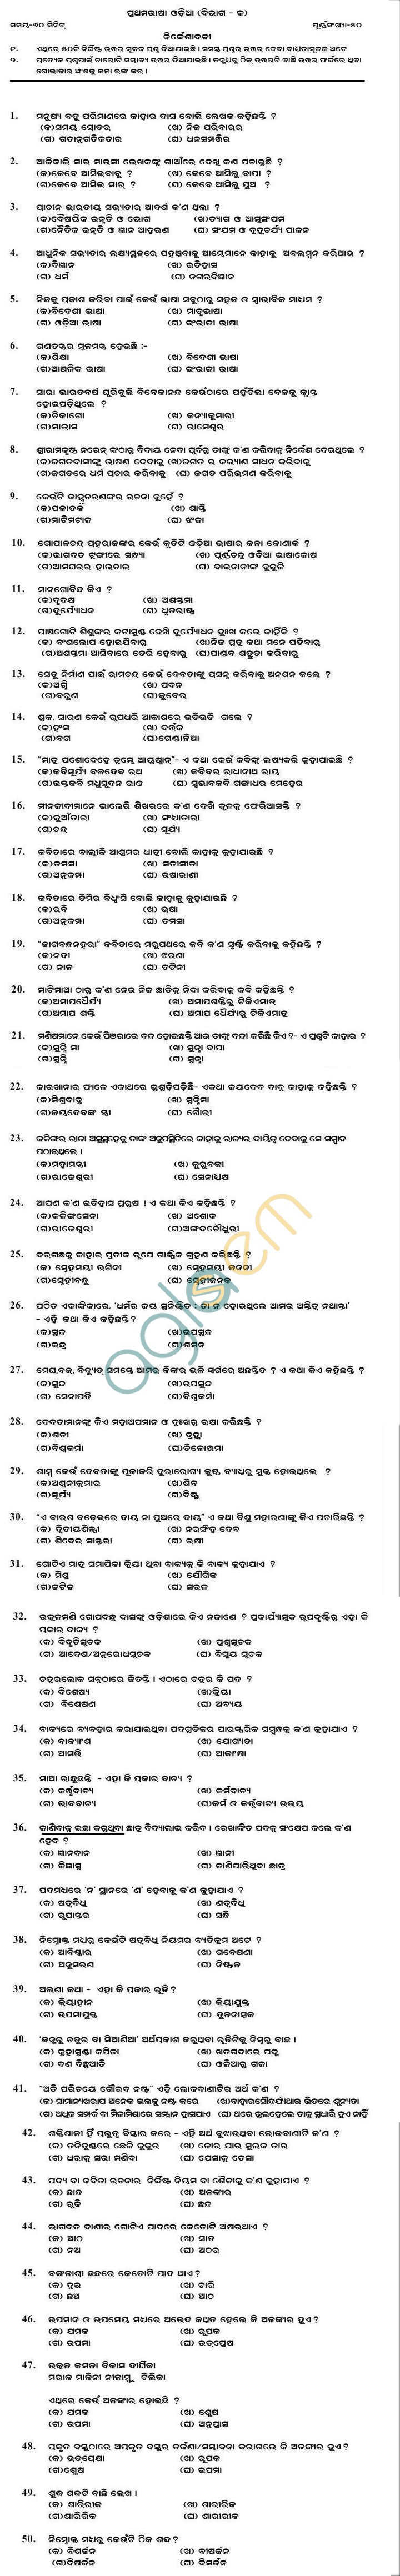 Odisha Board Sample Papers for HSC Exam 2014 - MIL Odia